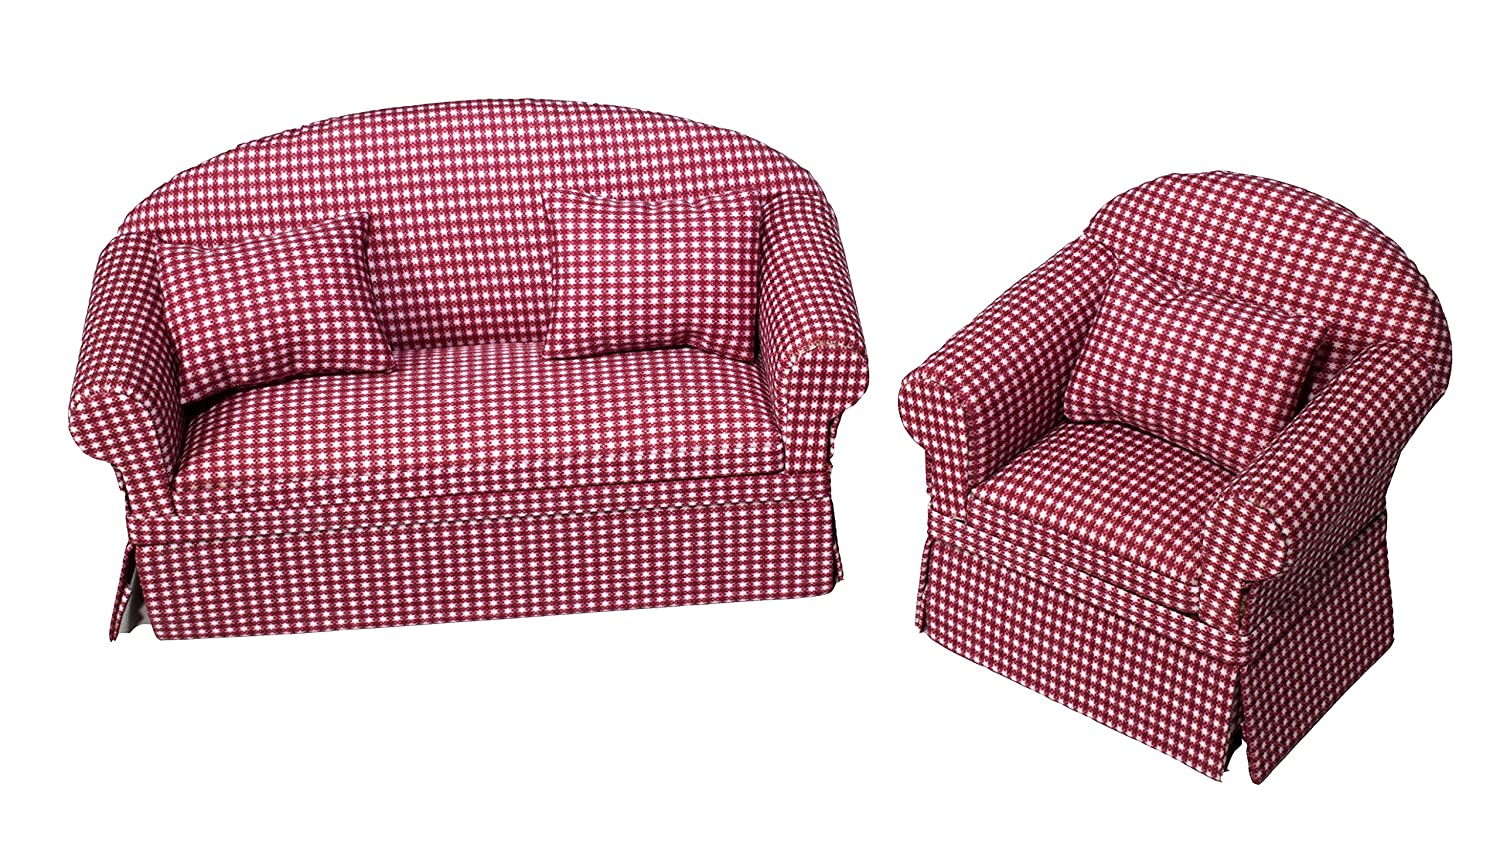 Astounding Inusitus Set Of Matching Dollhouse Sofa Armchair Dolls House Furniture Couch Chair Red Checkered 1 12 Scale Red Check Gmtry Best Dining Table And Chair Ideas Images Gmtryco